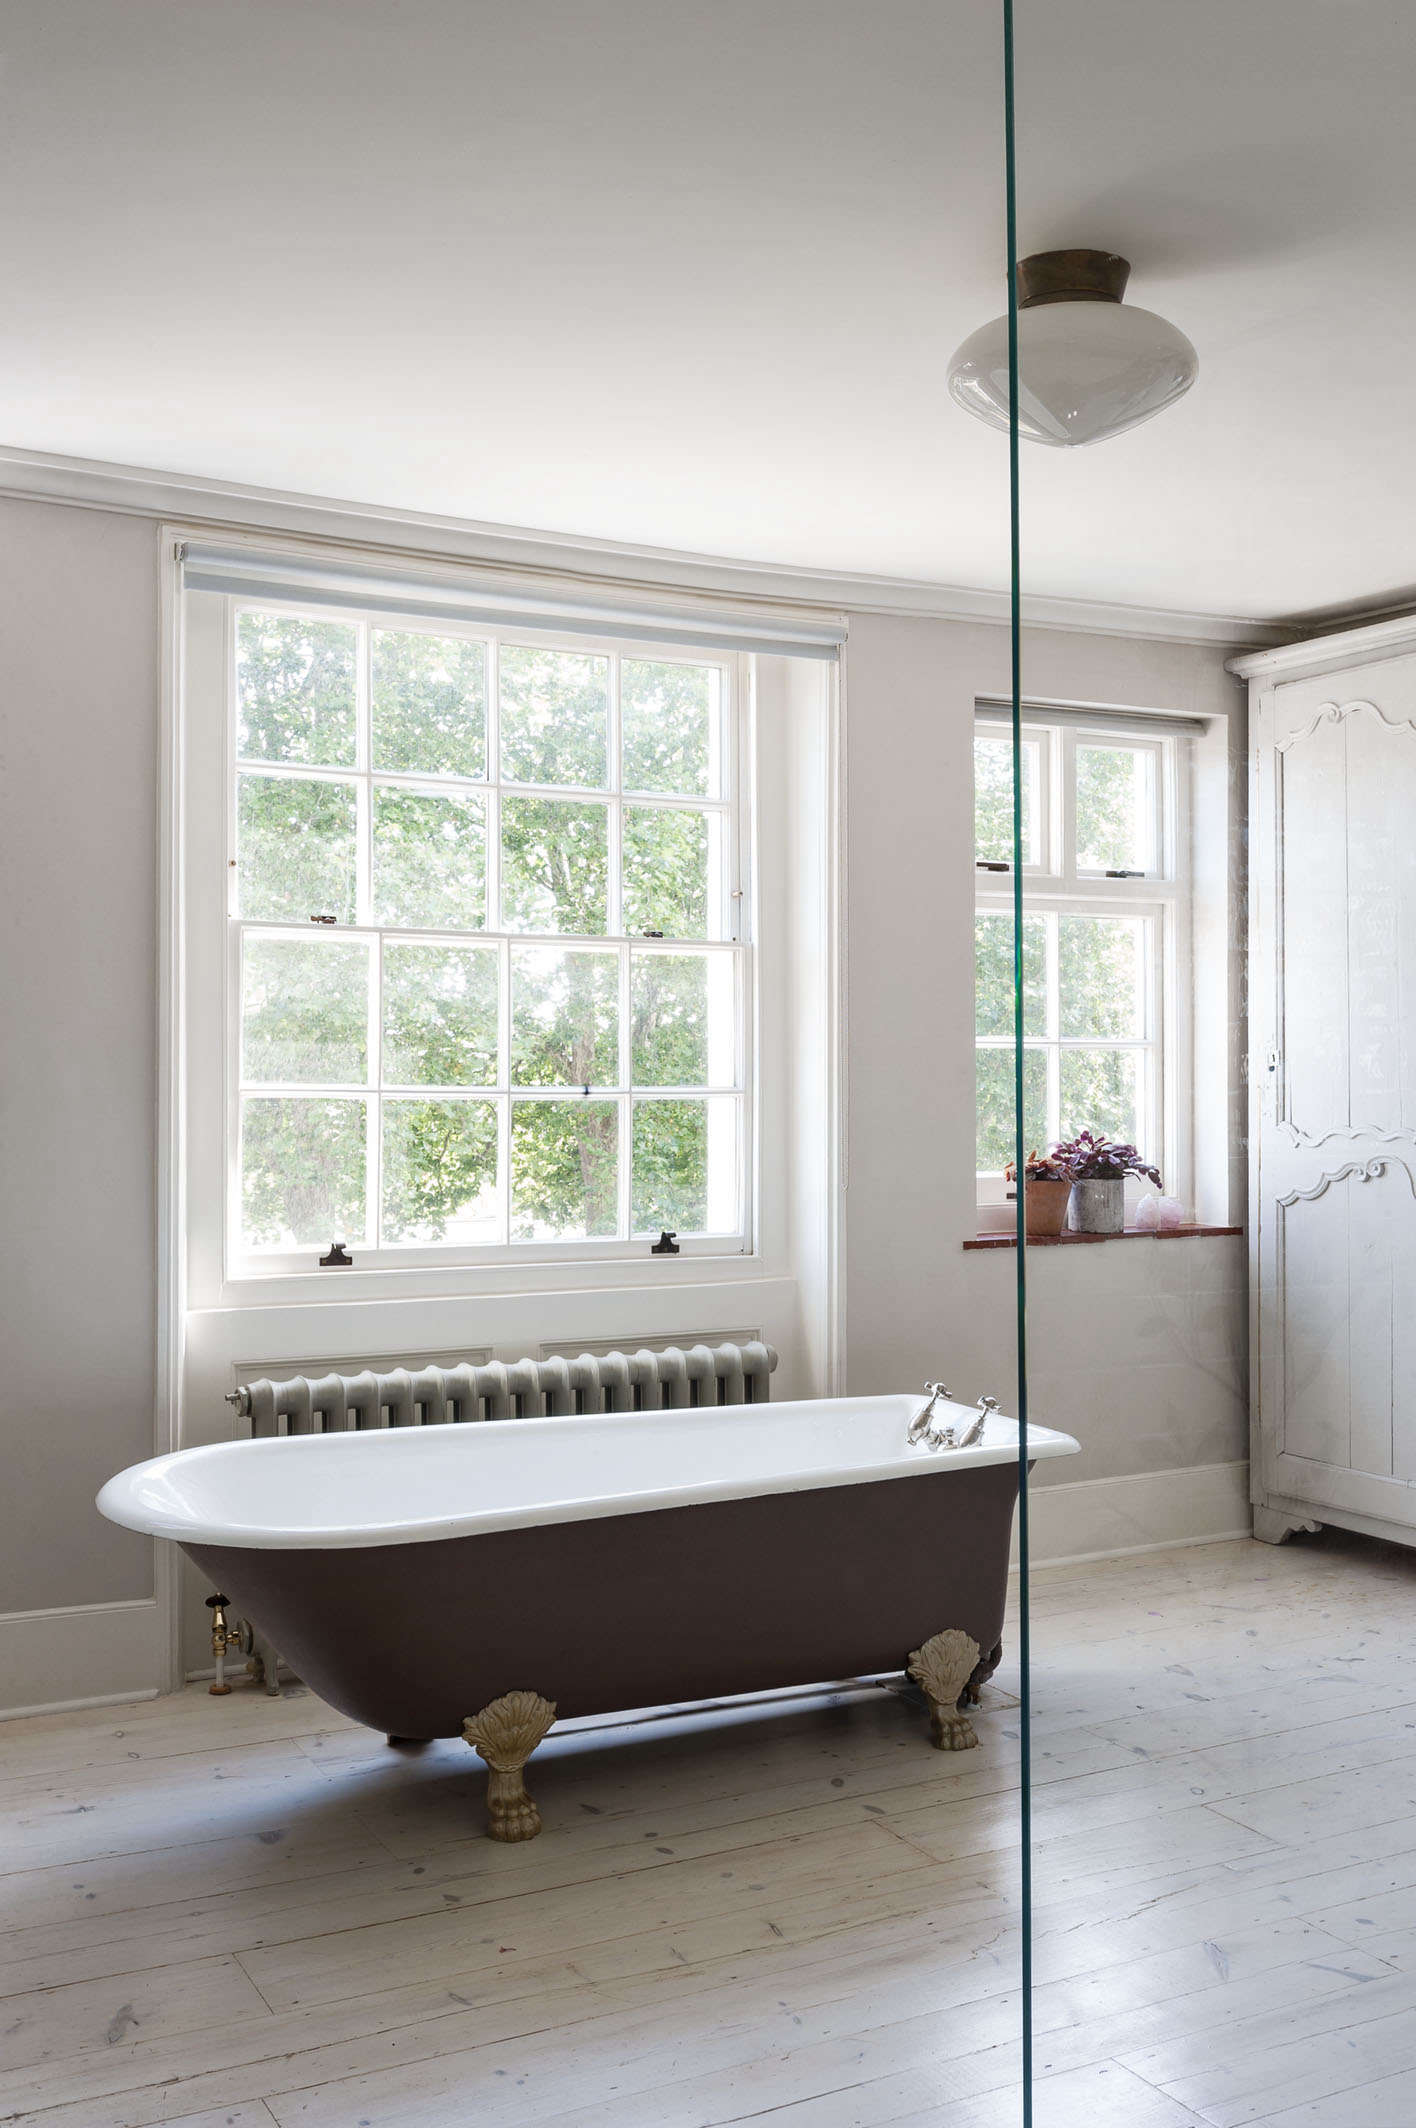 Wood Floor In Bathroom Pros And Cons Remodeling 101: Romance In The Bath: Built-in Vs